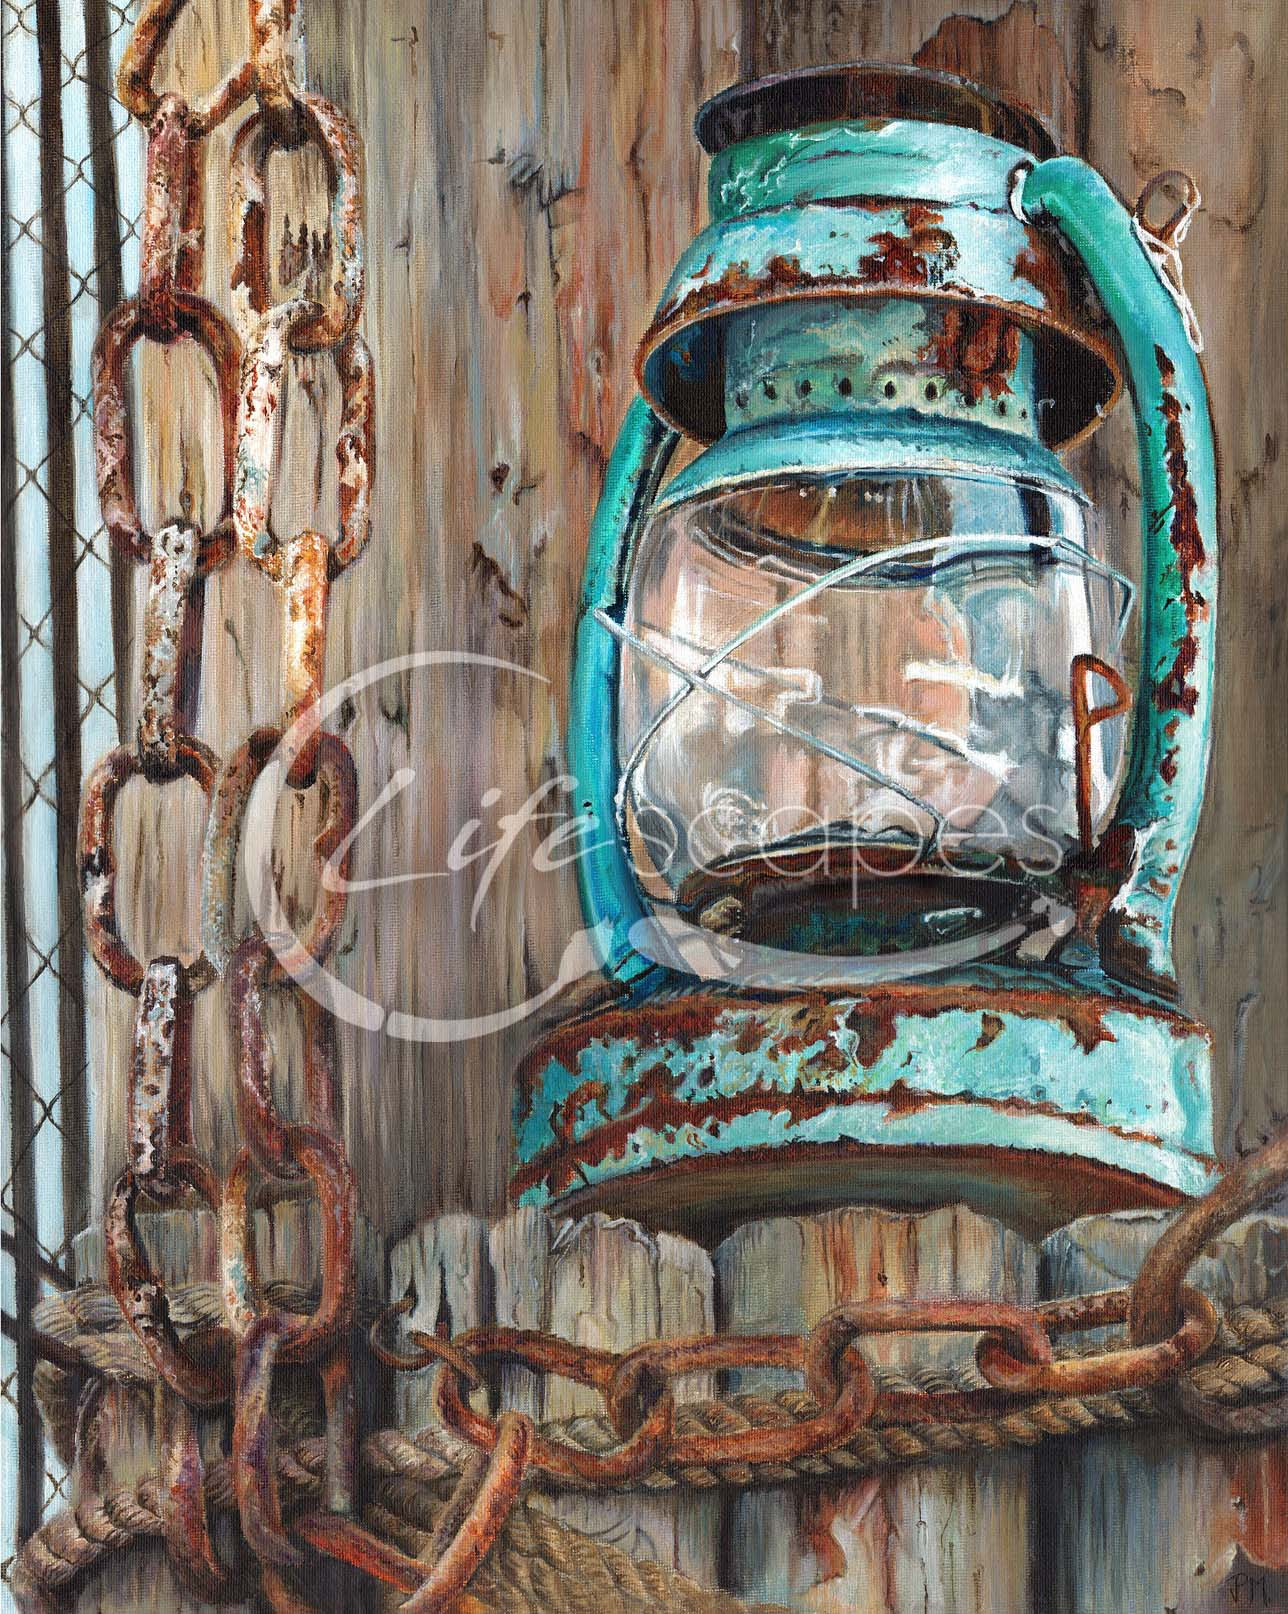 Lantern, Chains and Wood